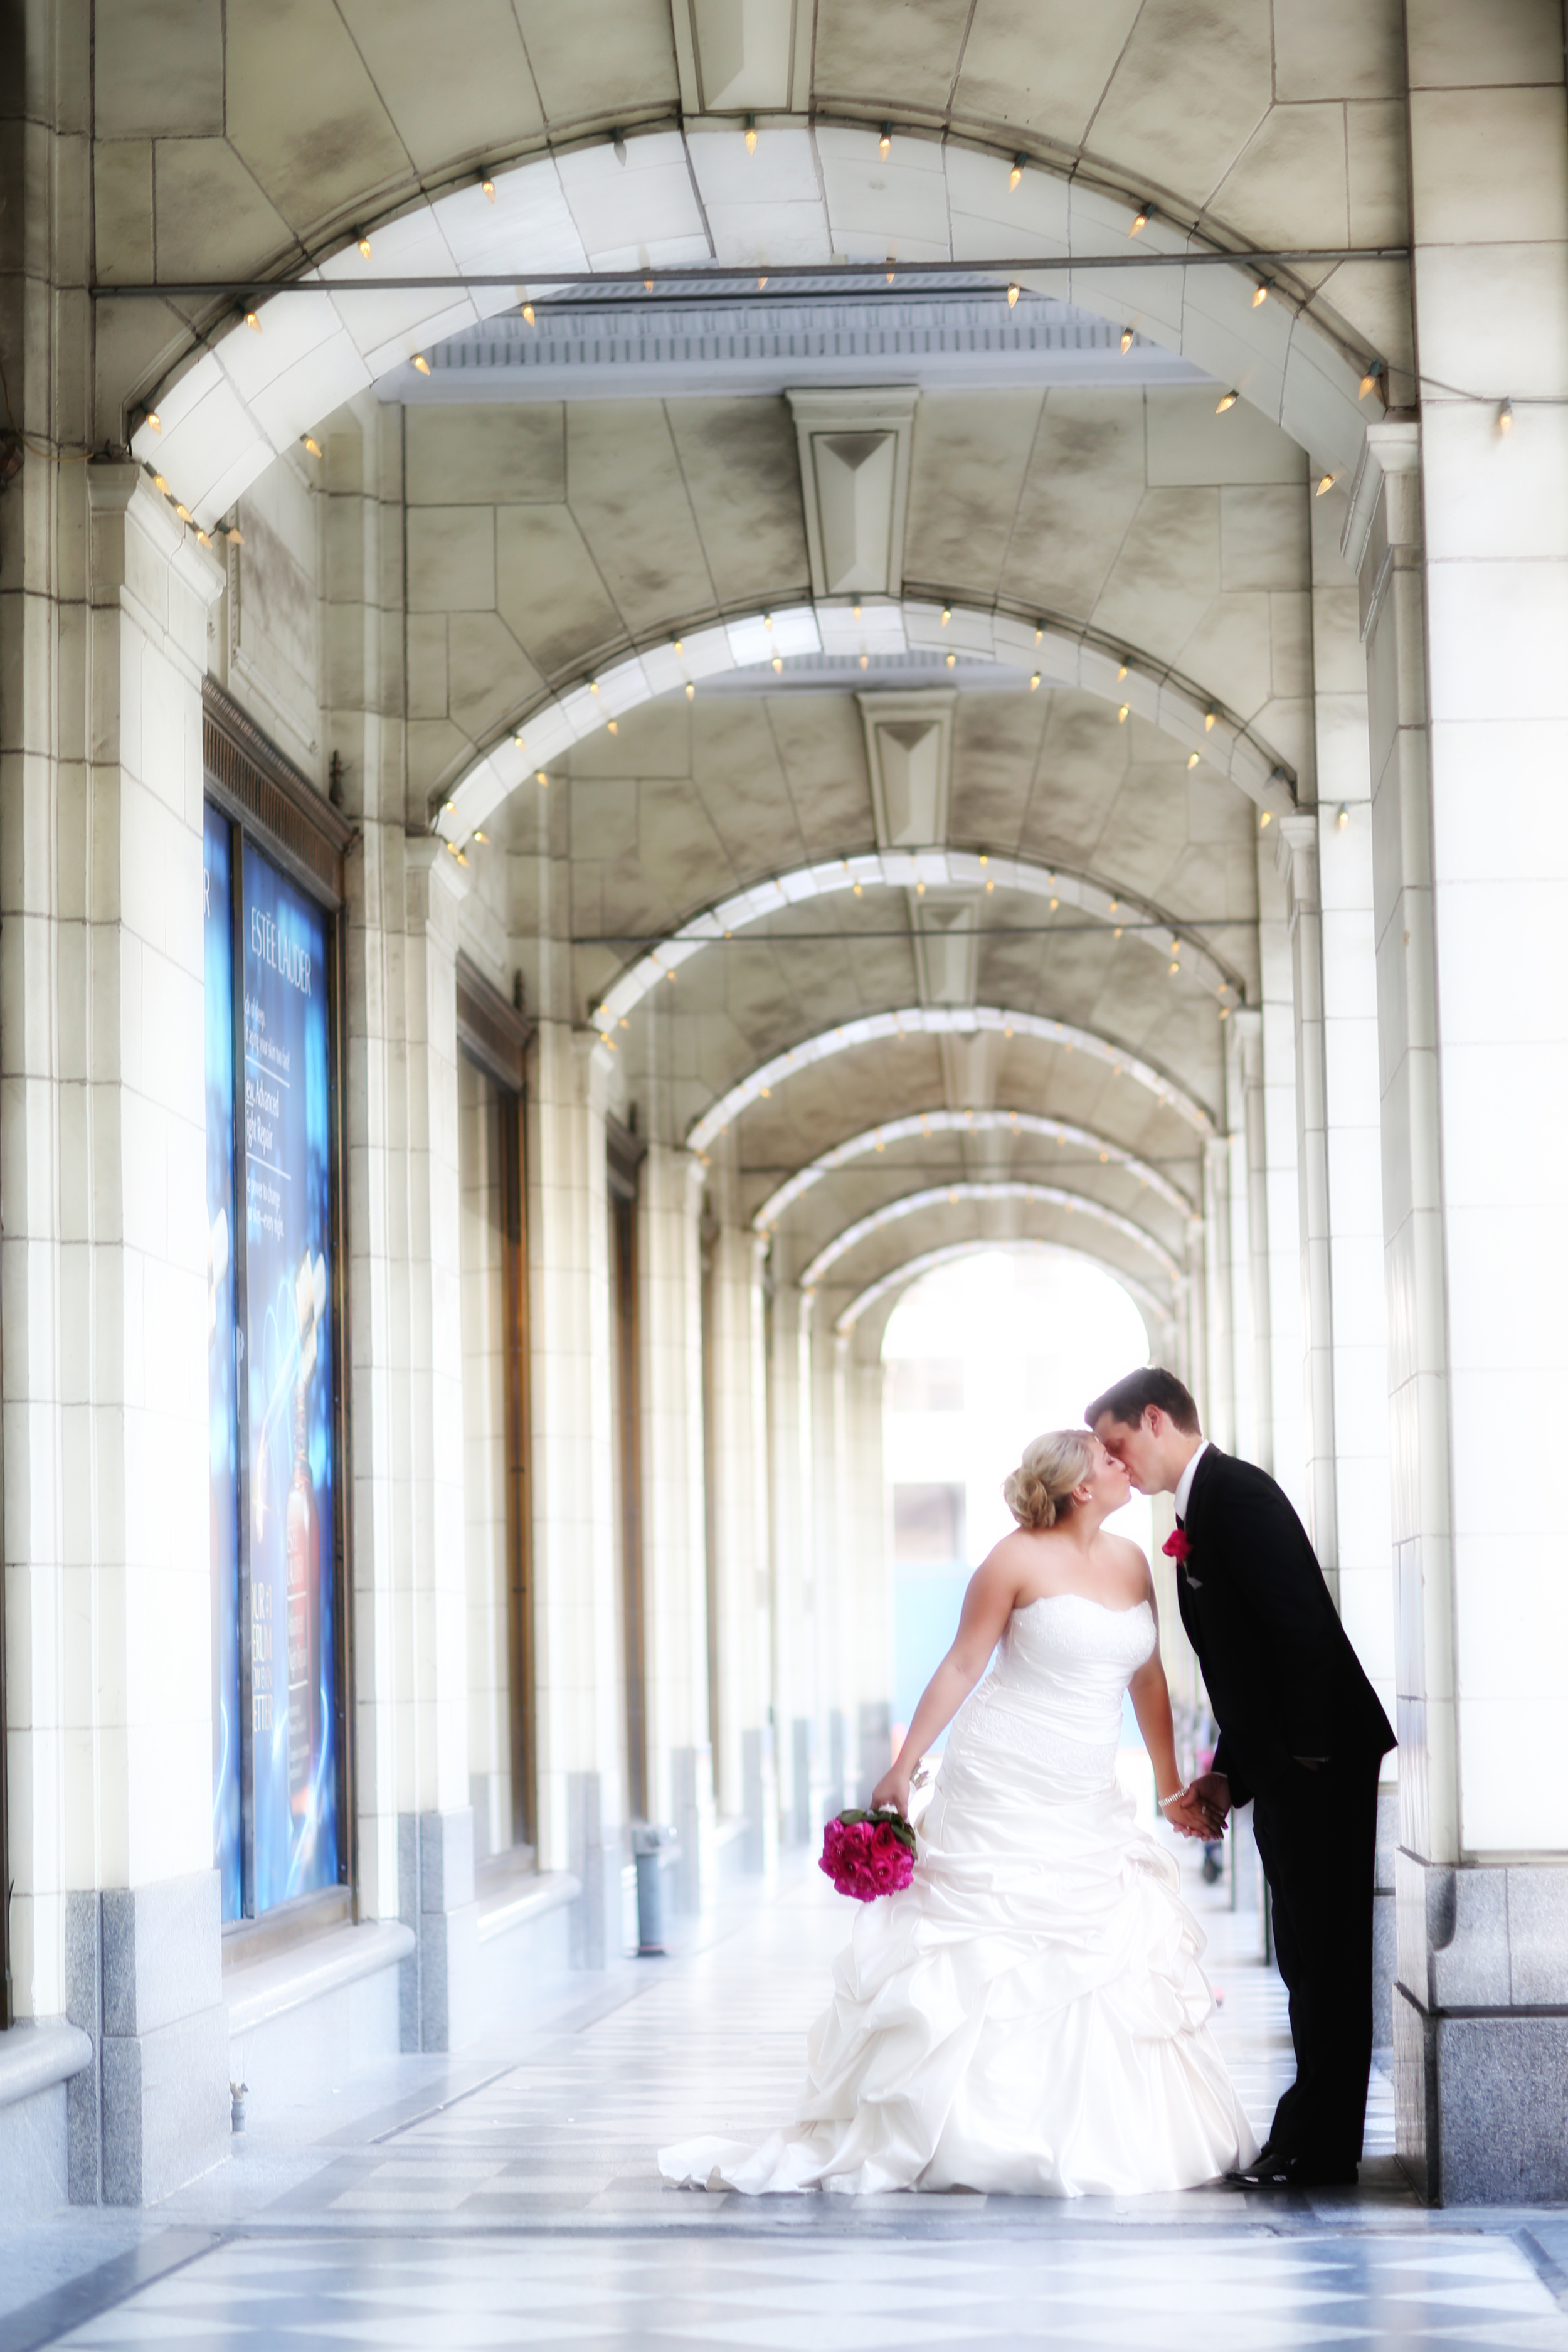 Photo of the Day | Sunday, March 6, 2016 | Winnipeg Wedding Photographers and Videographers